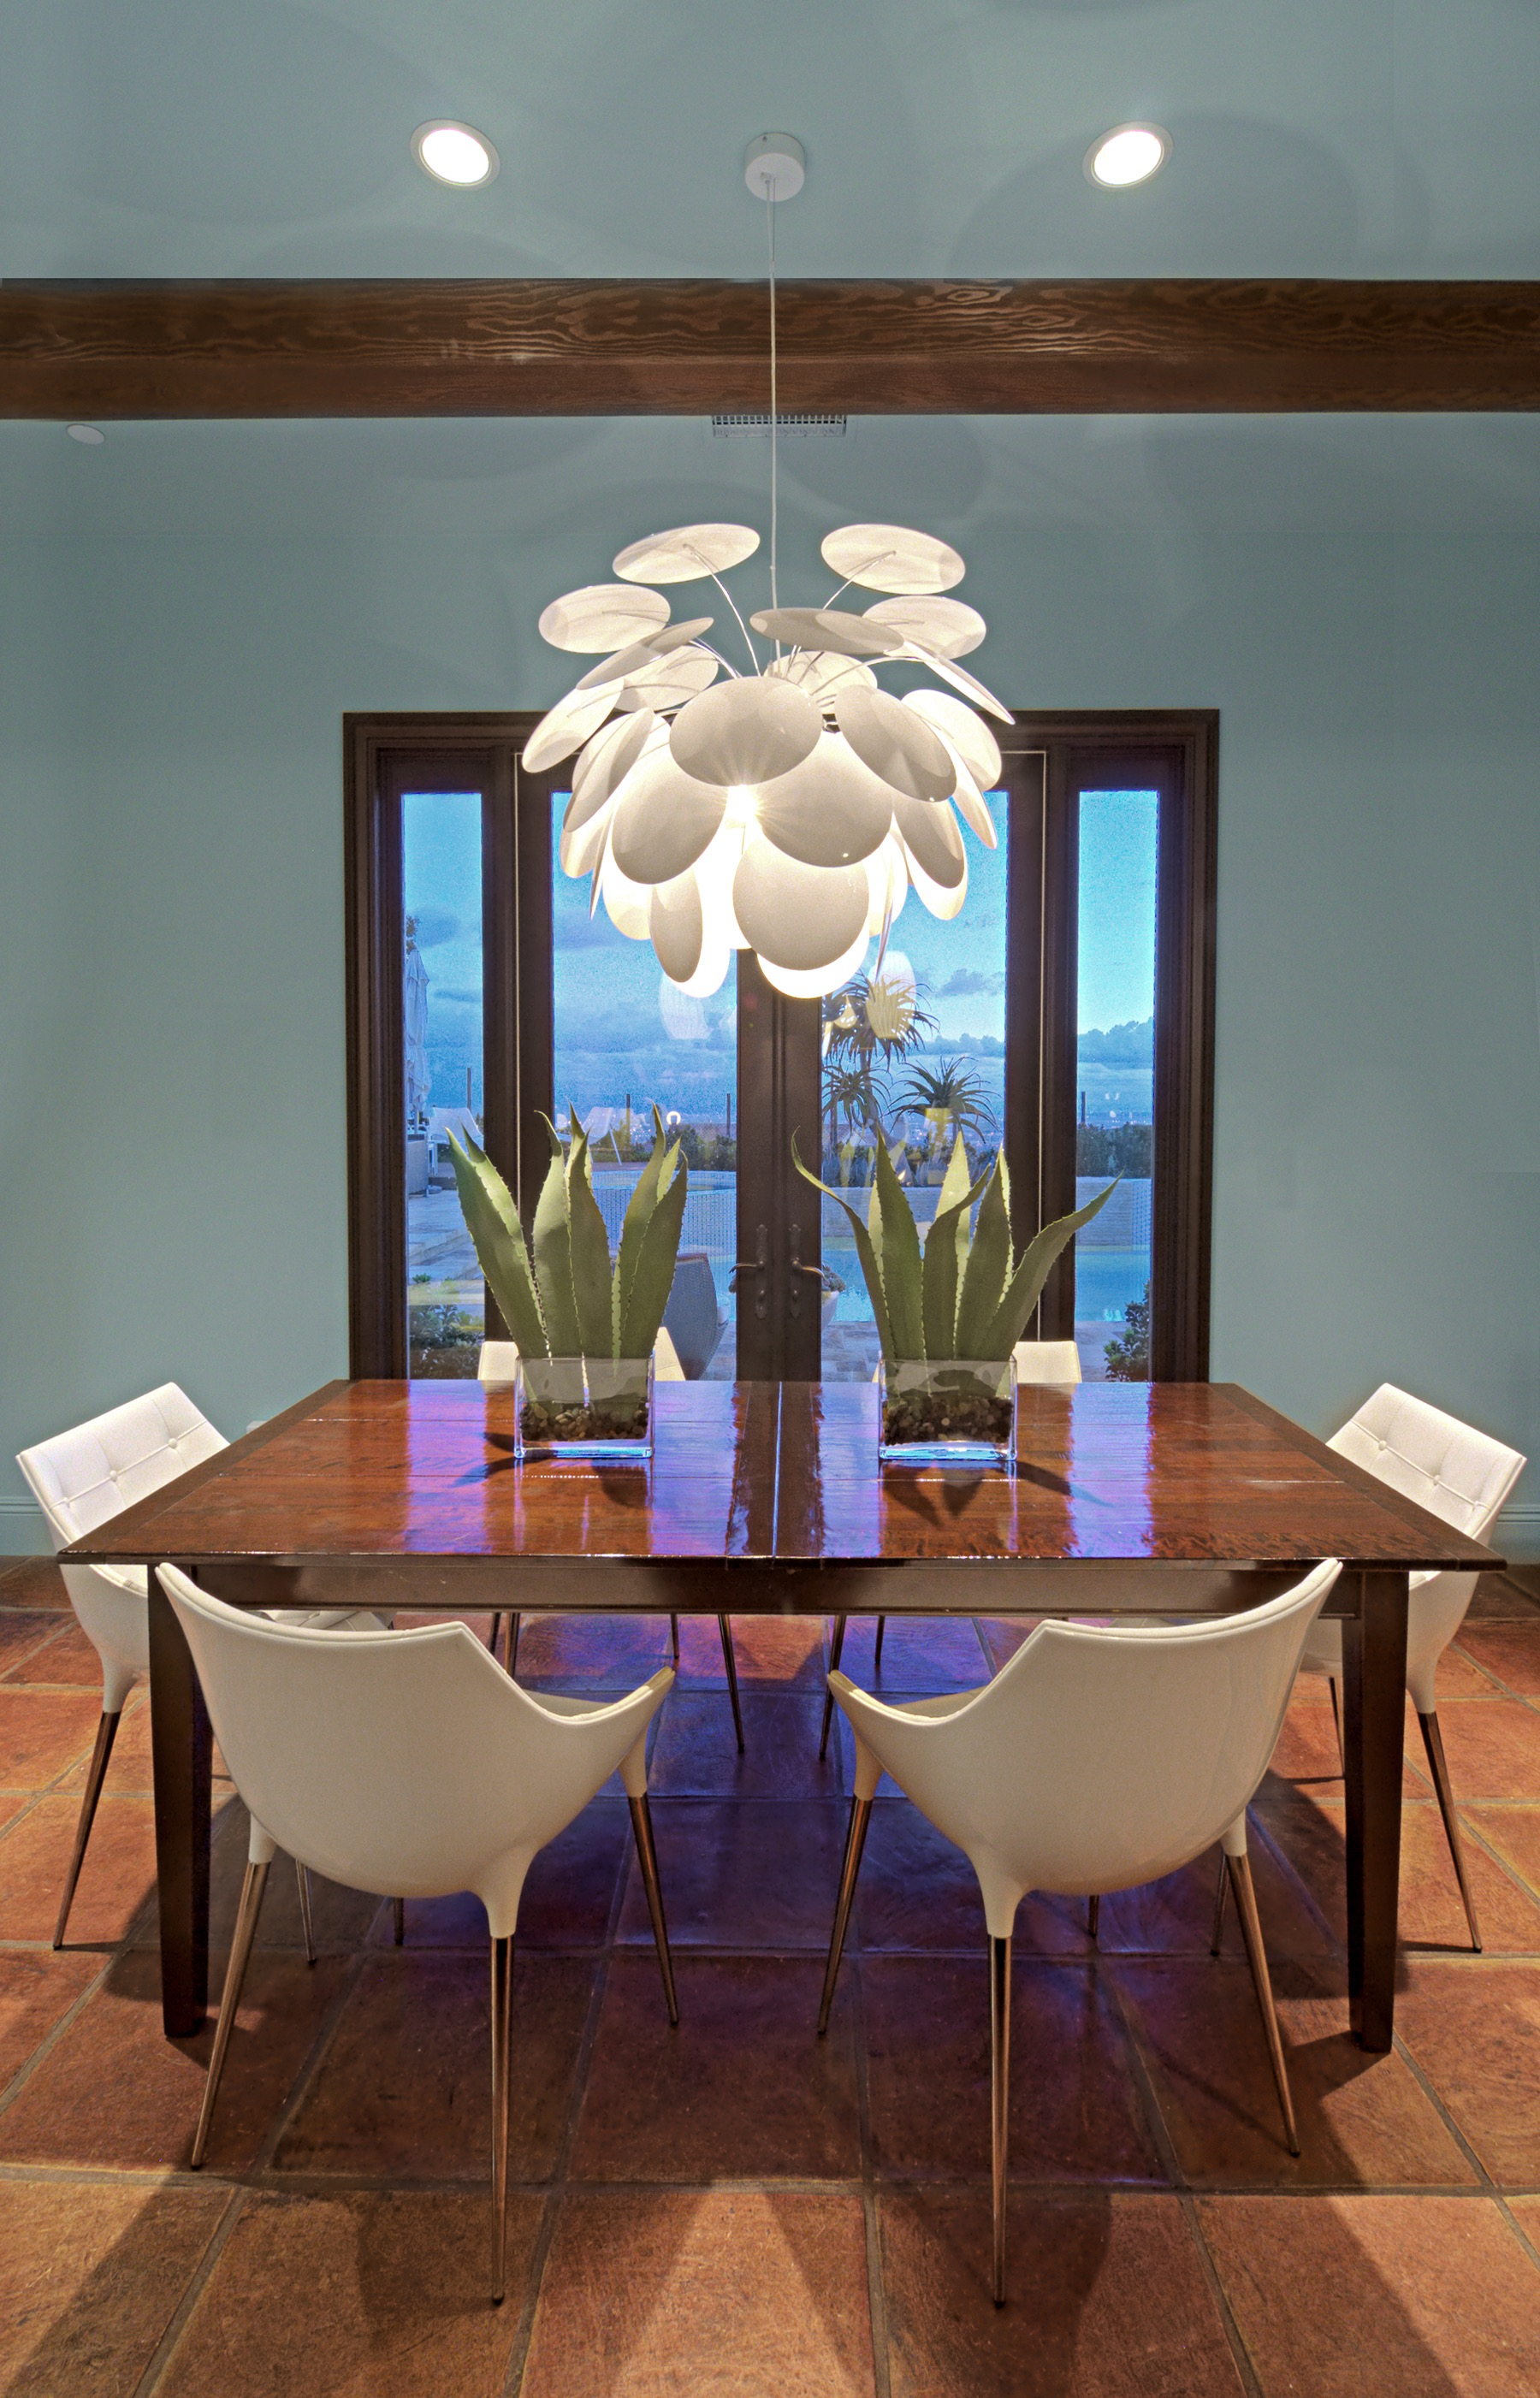 Holiday Decoration For Modern Dining Room With Creative Lighting (View 23 of 32)